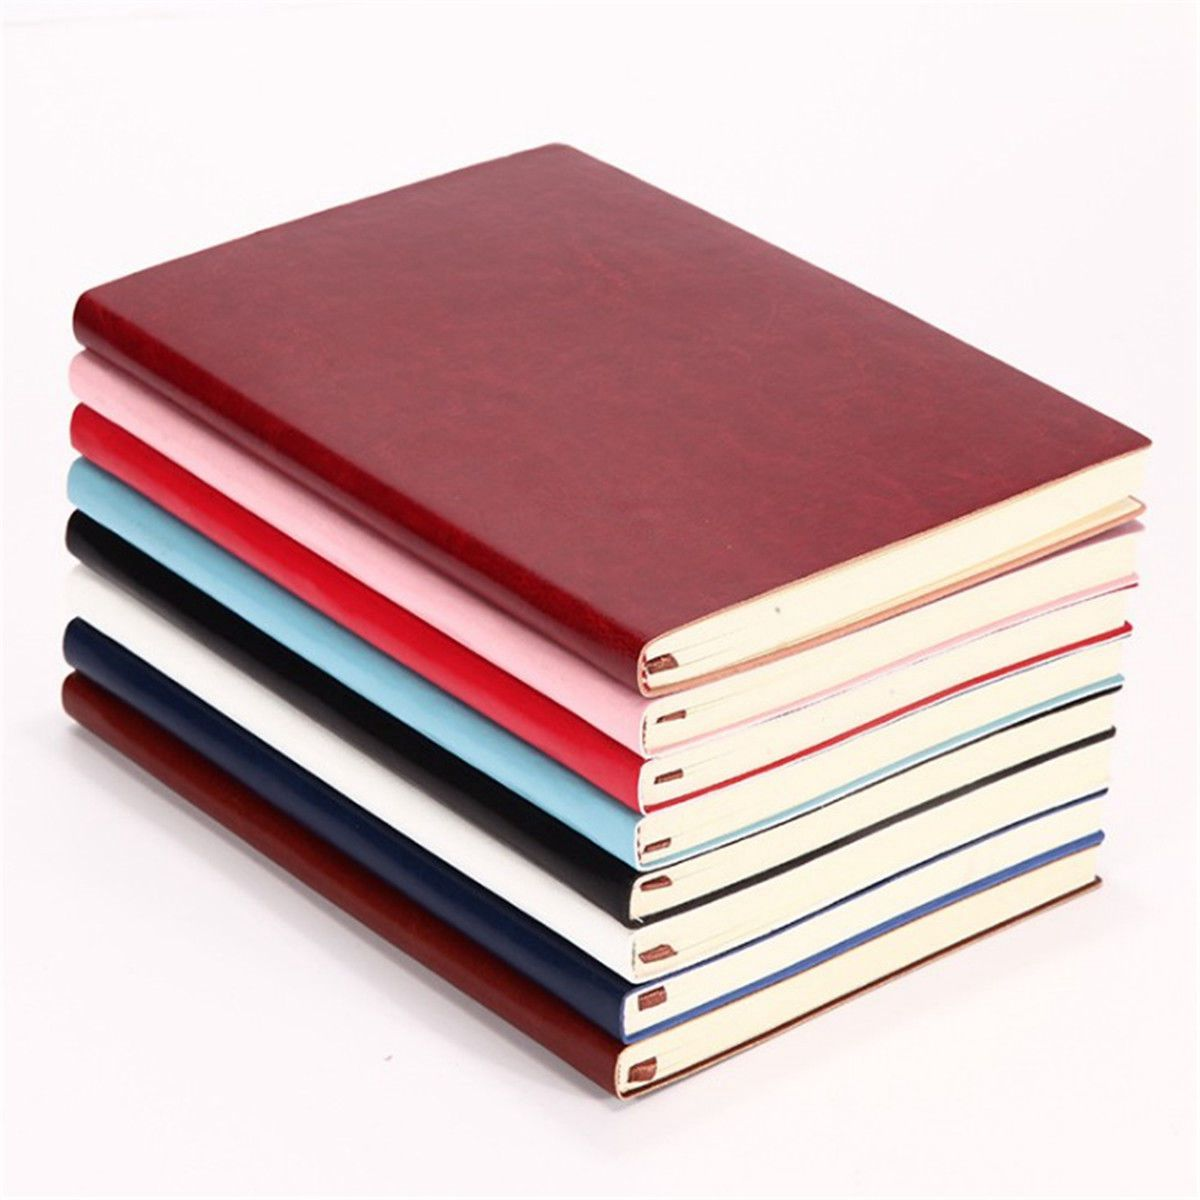 Random Color Soft Cover PU Leather Notebook Writing Journal 100 Page Lined Diary Book